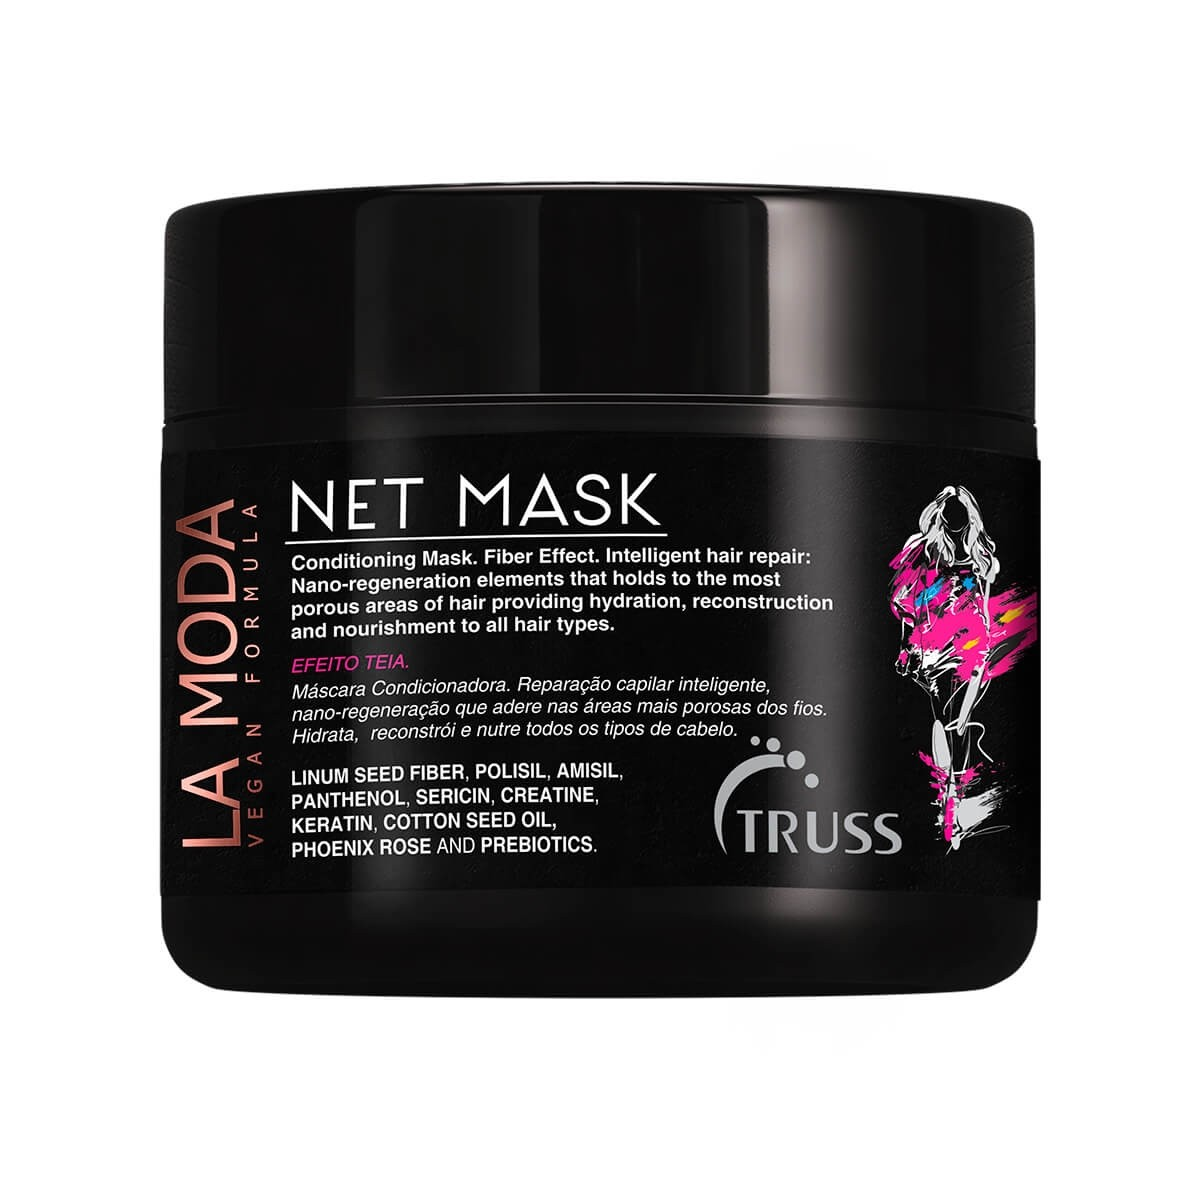 Net Mask LA MODA Truss 550g